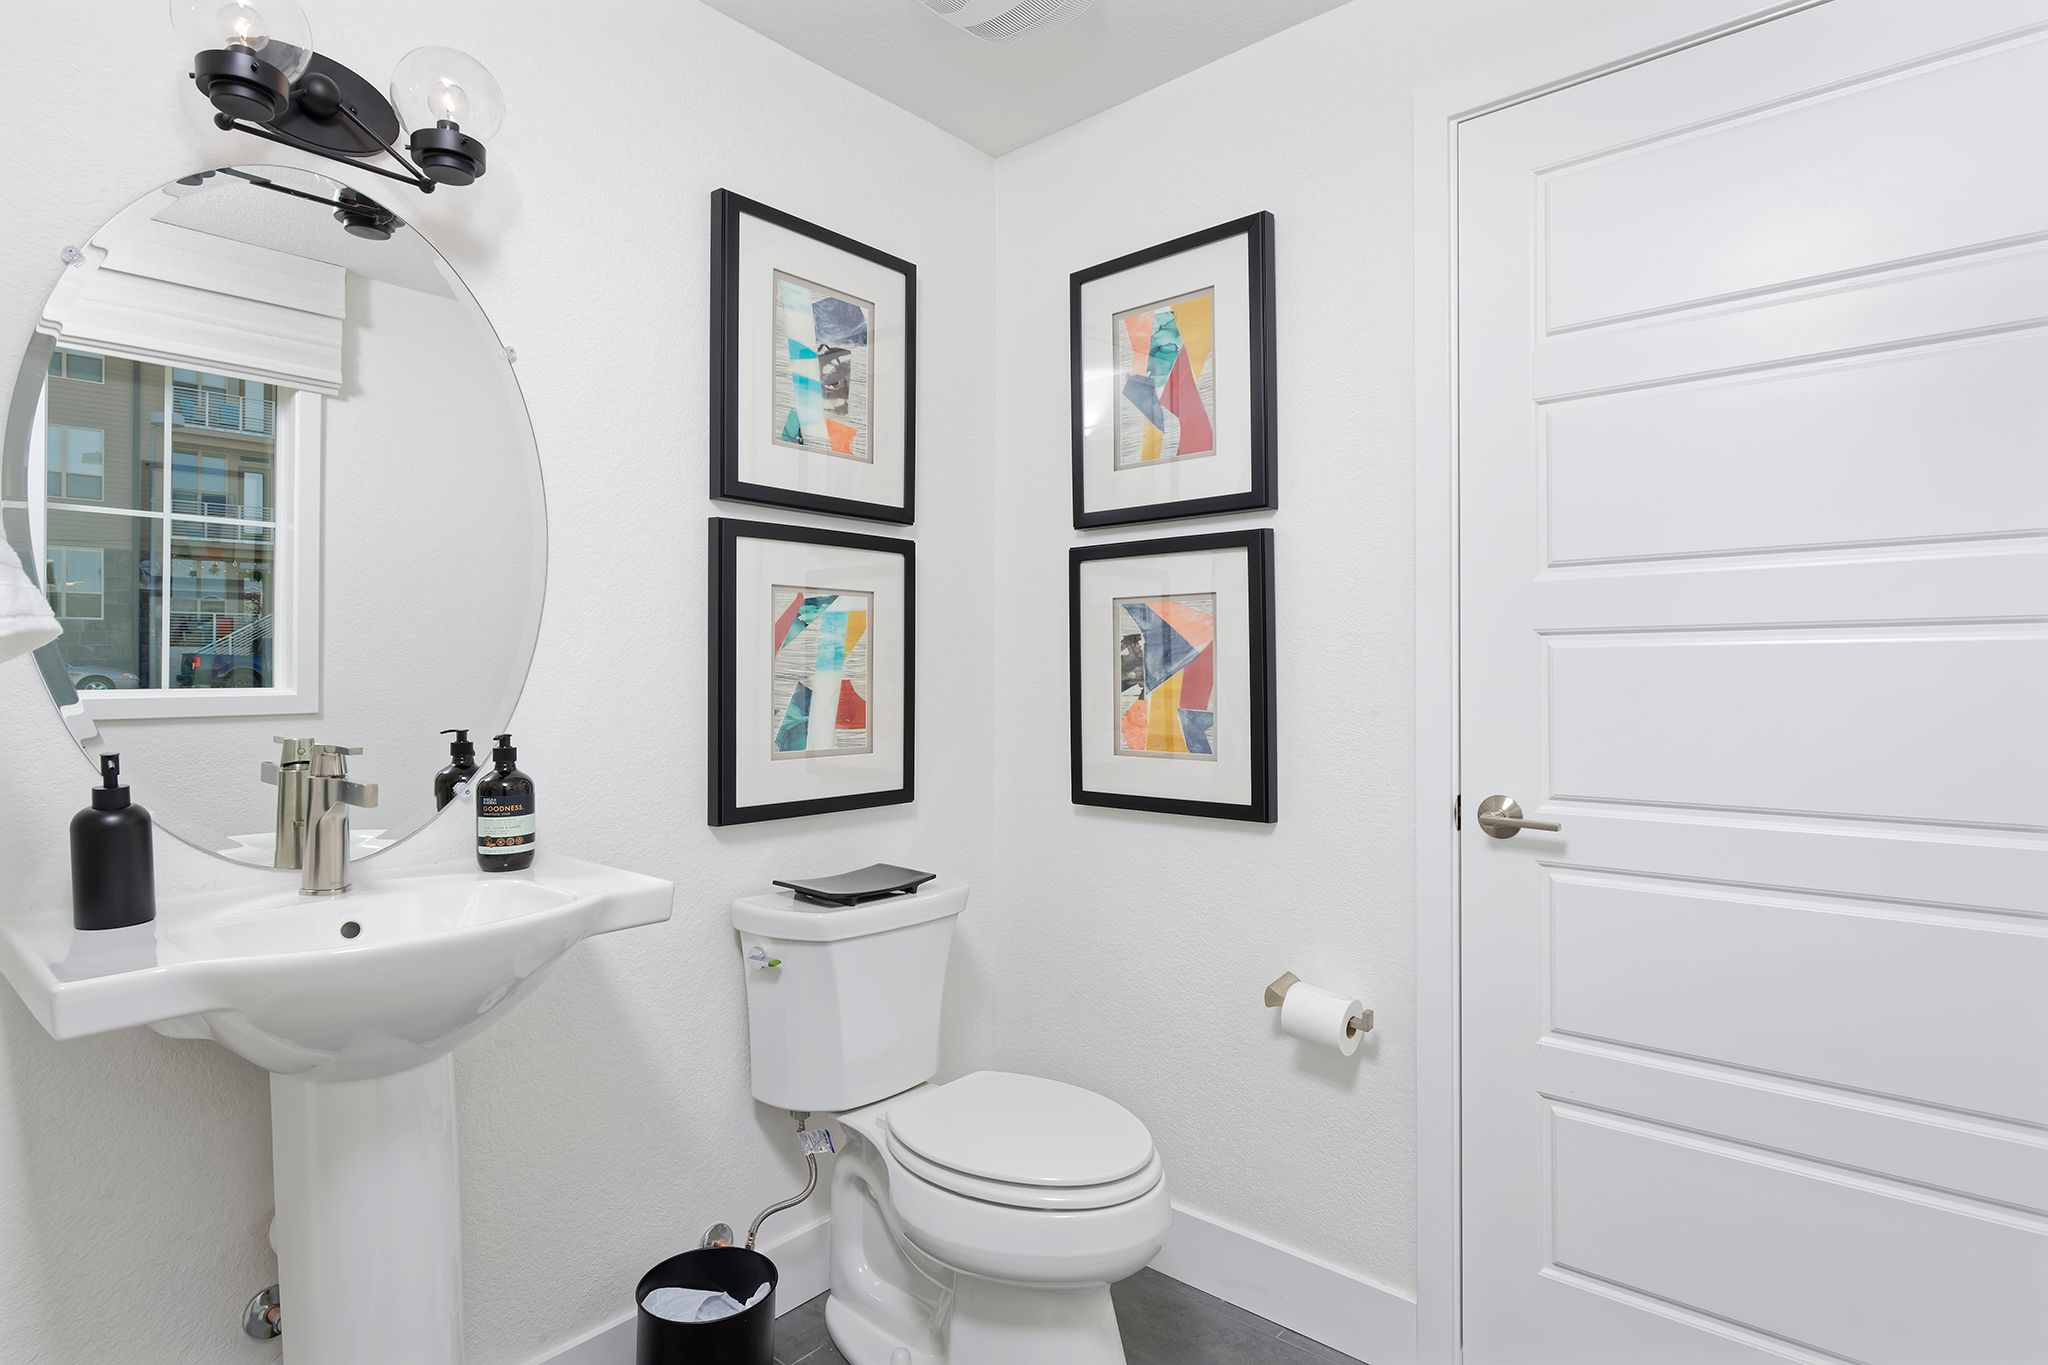 Bathroom featured in the Marquee By Thrive Home Builders in Denver, CO